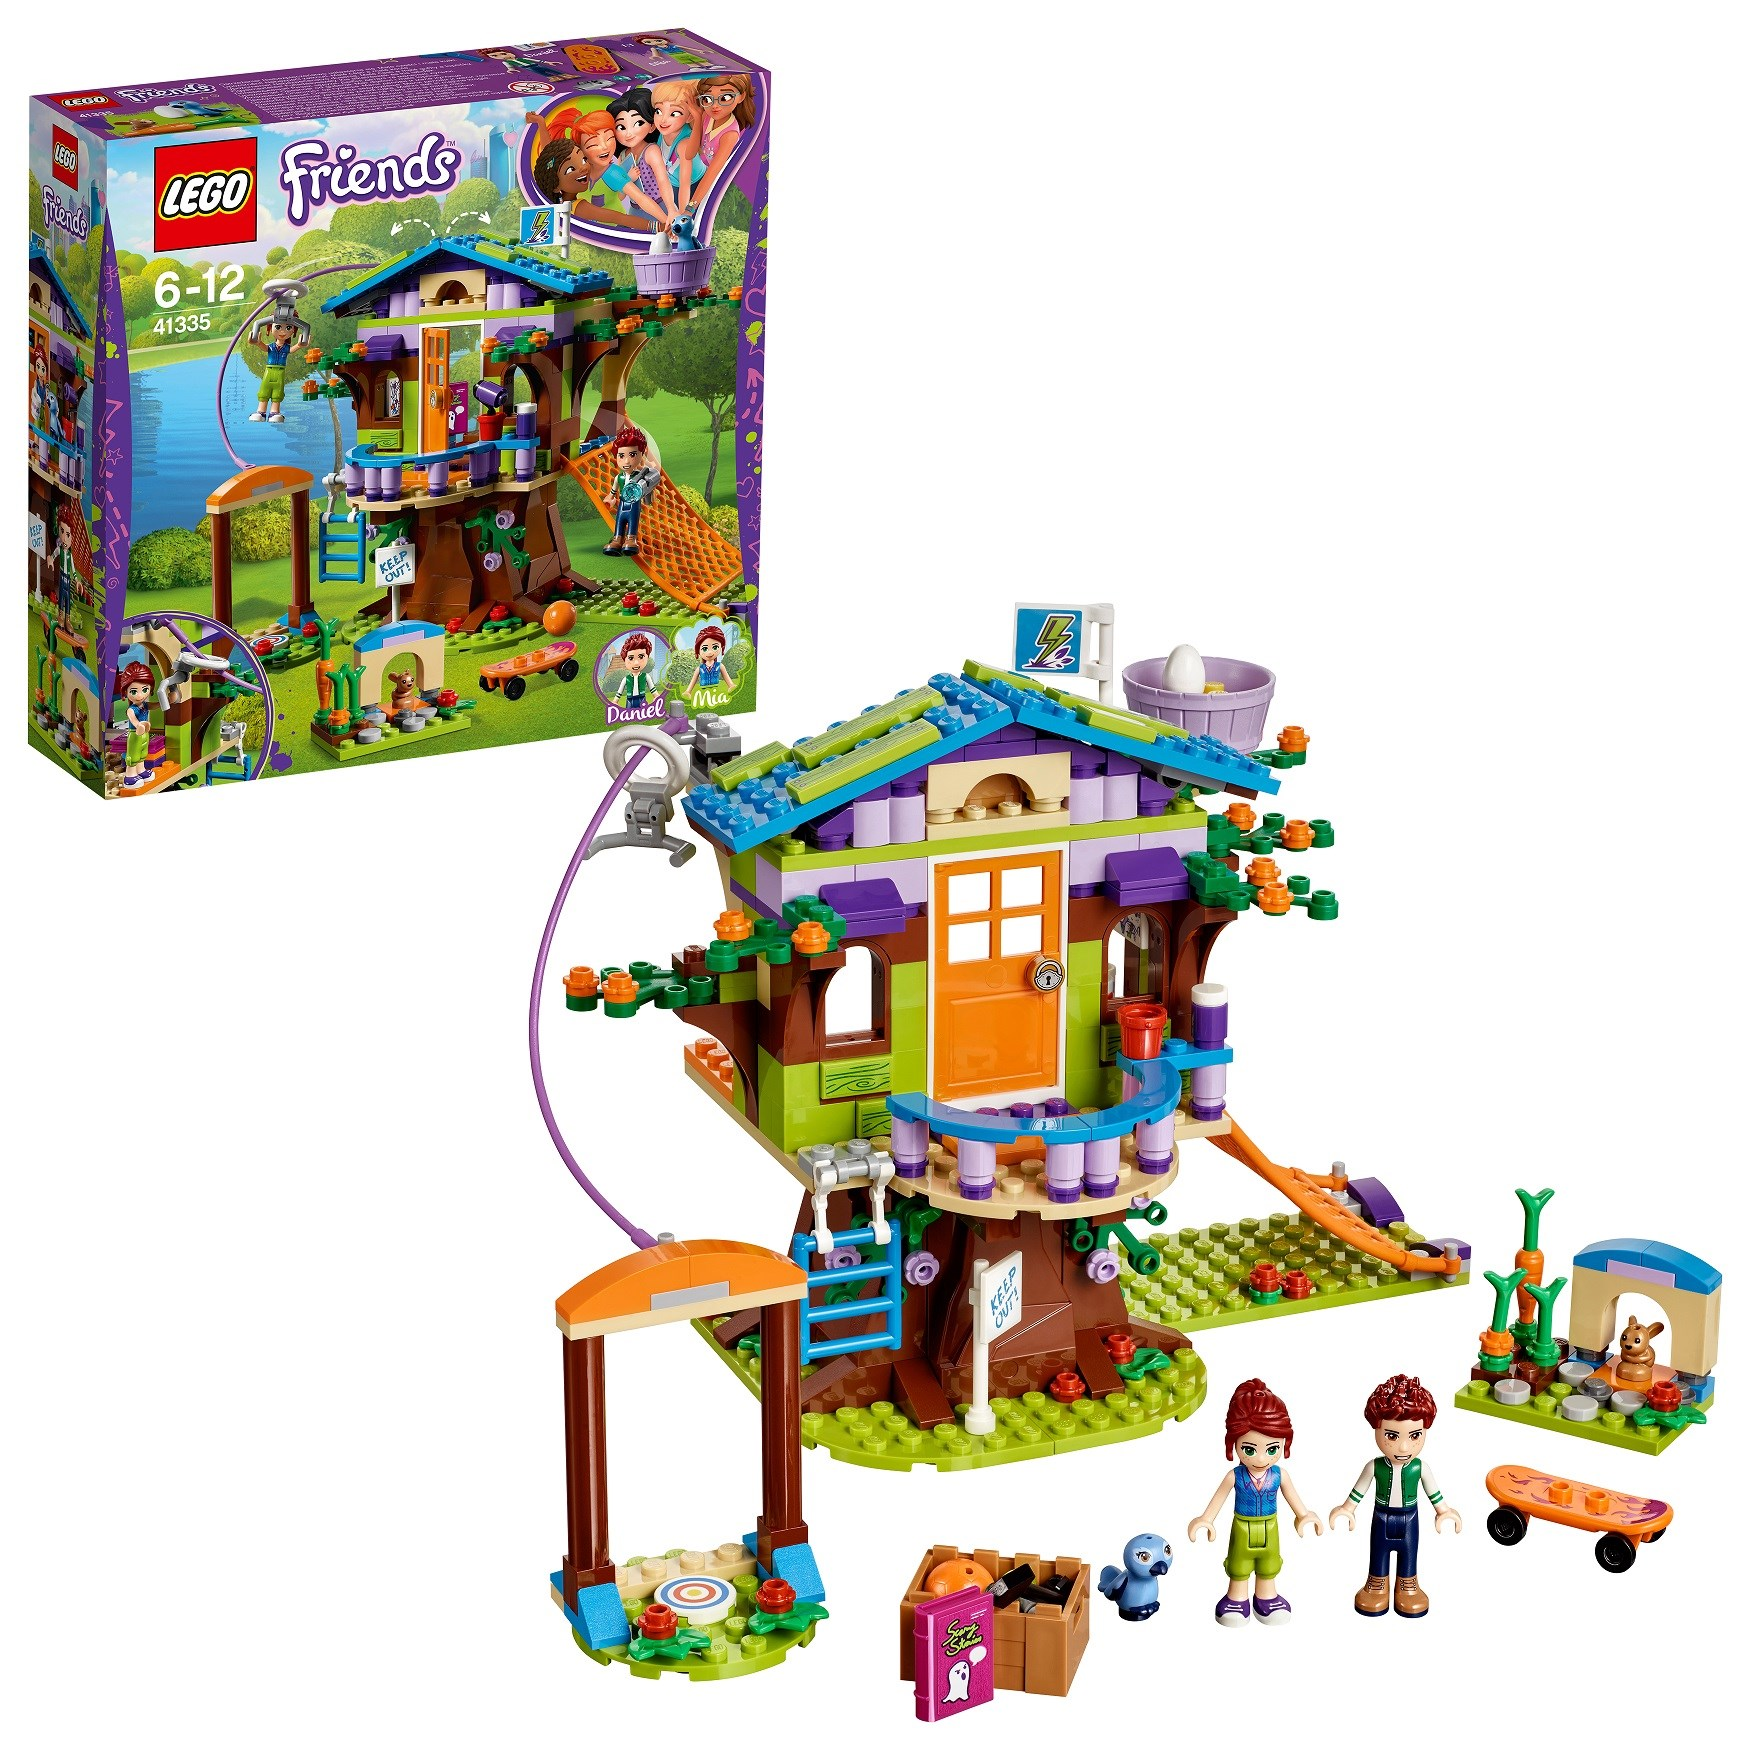 Designer Lego Friends 41335 Mia House On A Tree